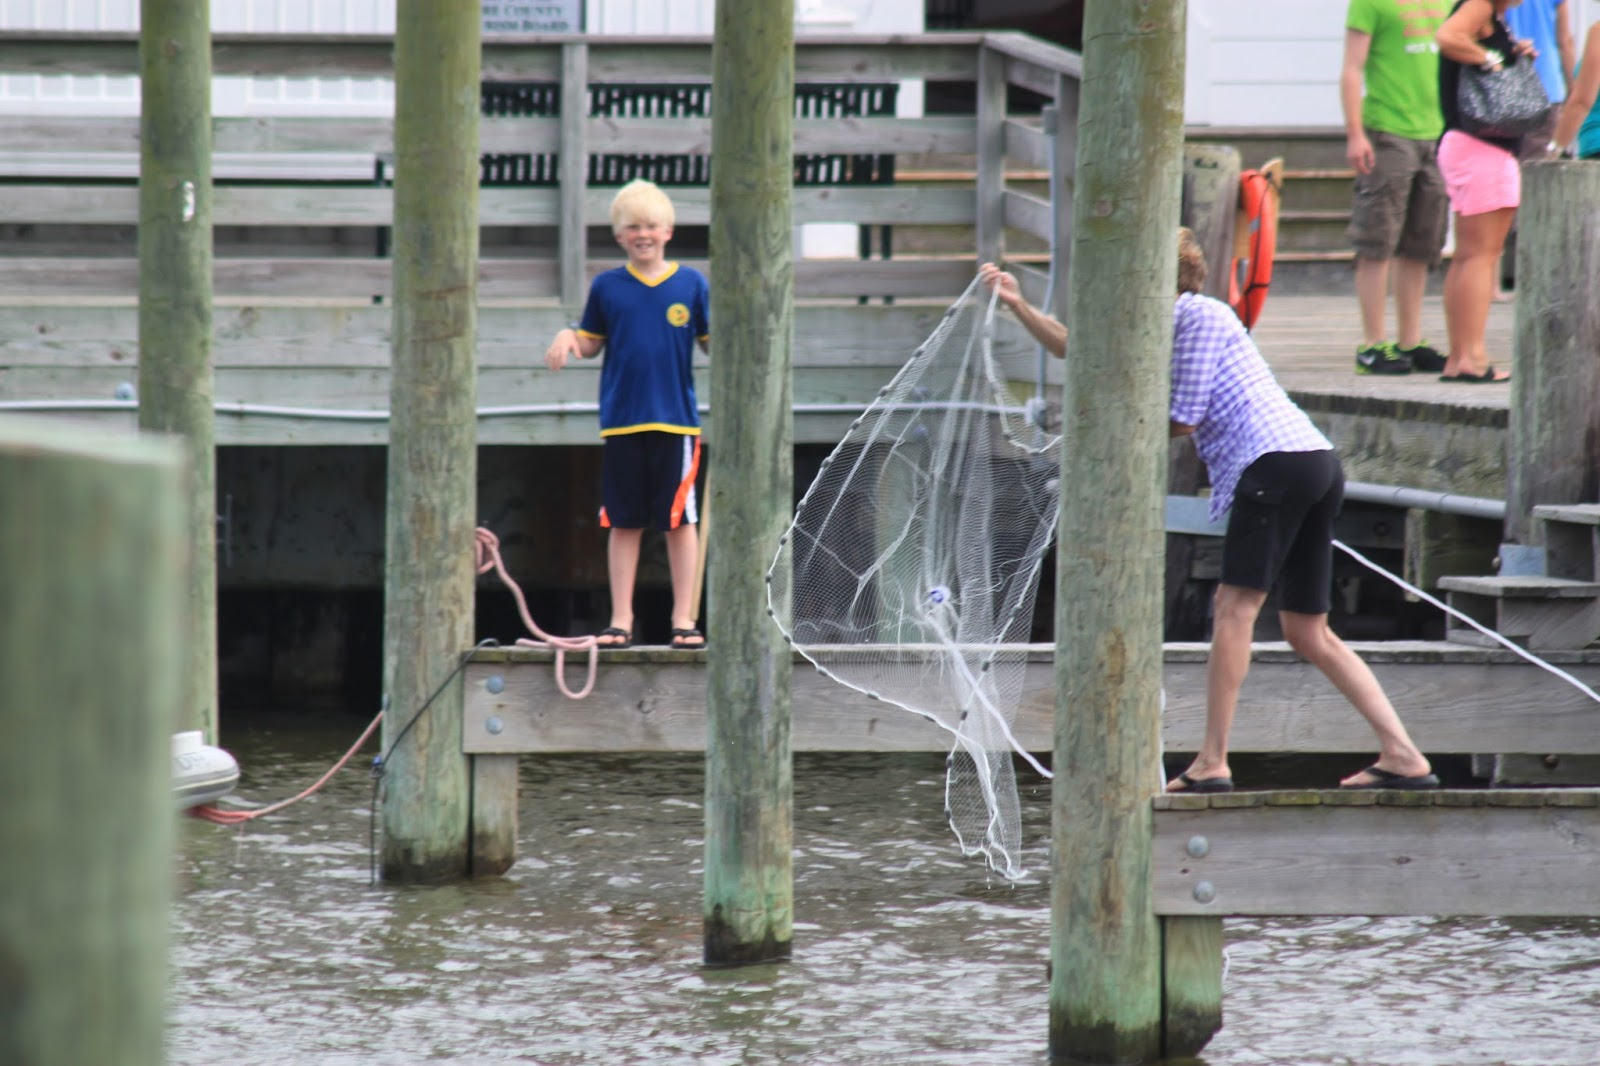 Pats Bait And Tackle Fort Walton Beach